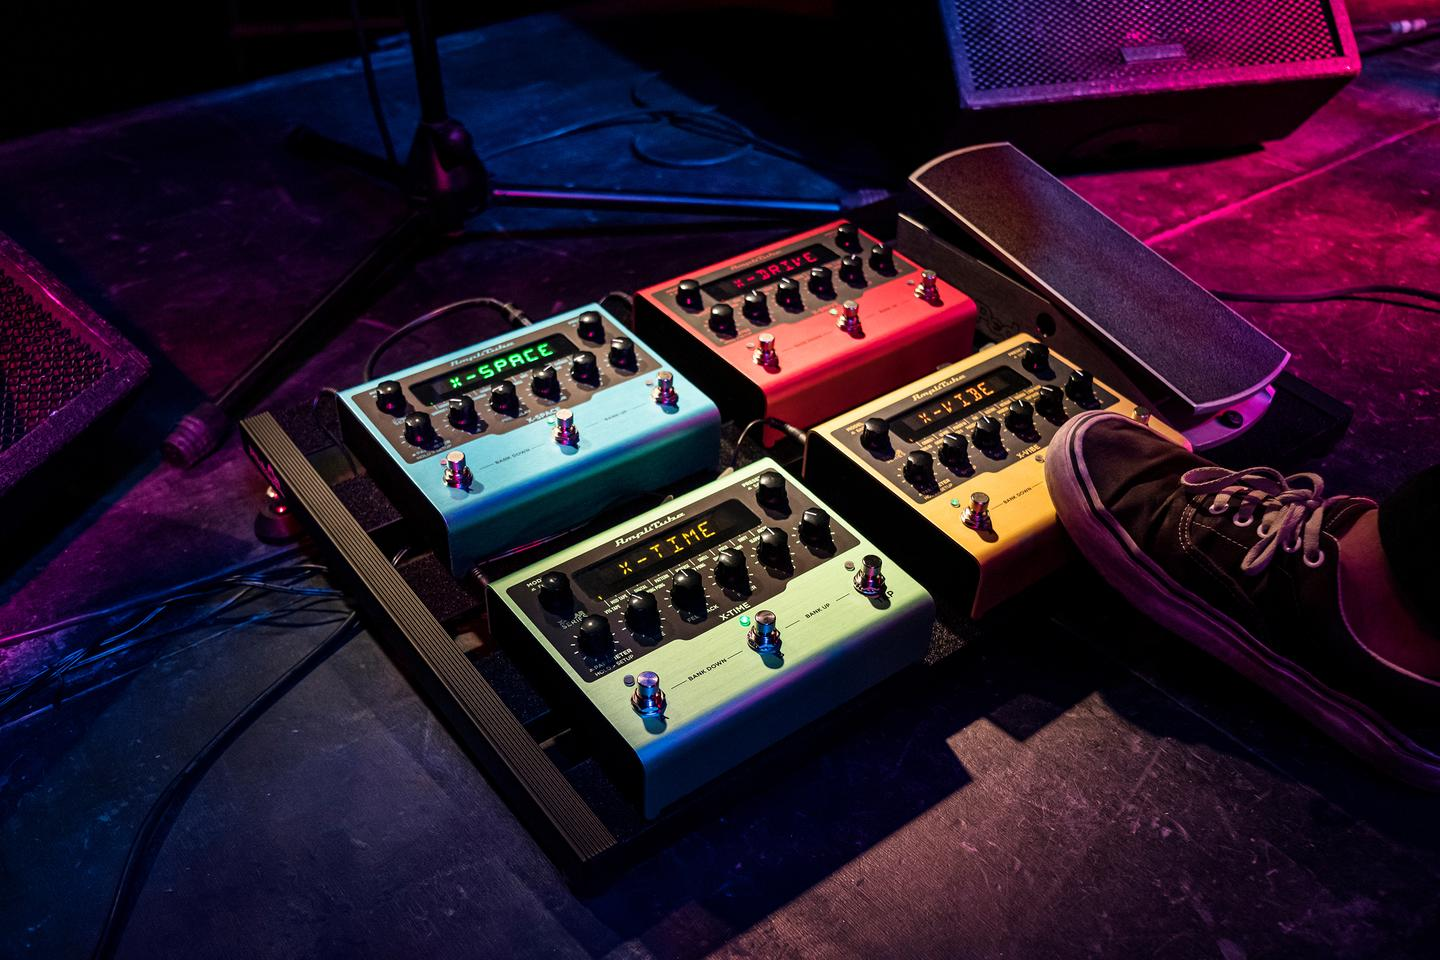 The X-Gear range comprises the X-Space reverb, X-Time delay, X-Drive distortion and X-Tiem modulation pedals